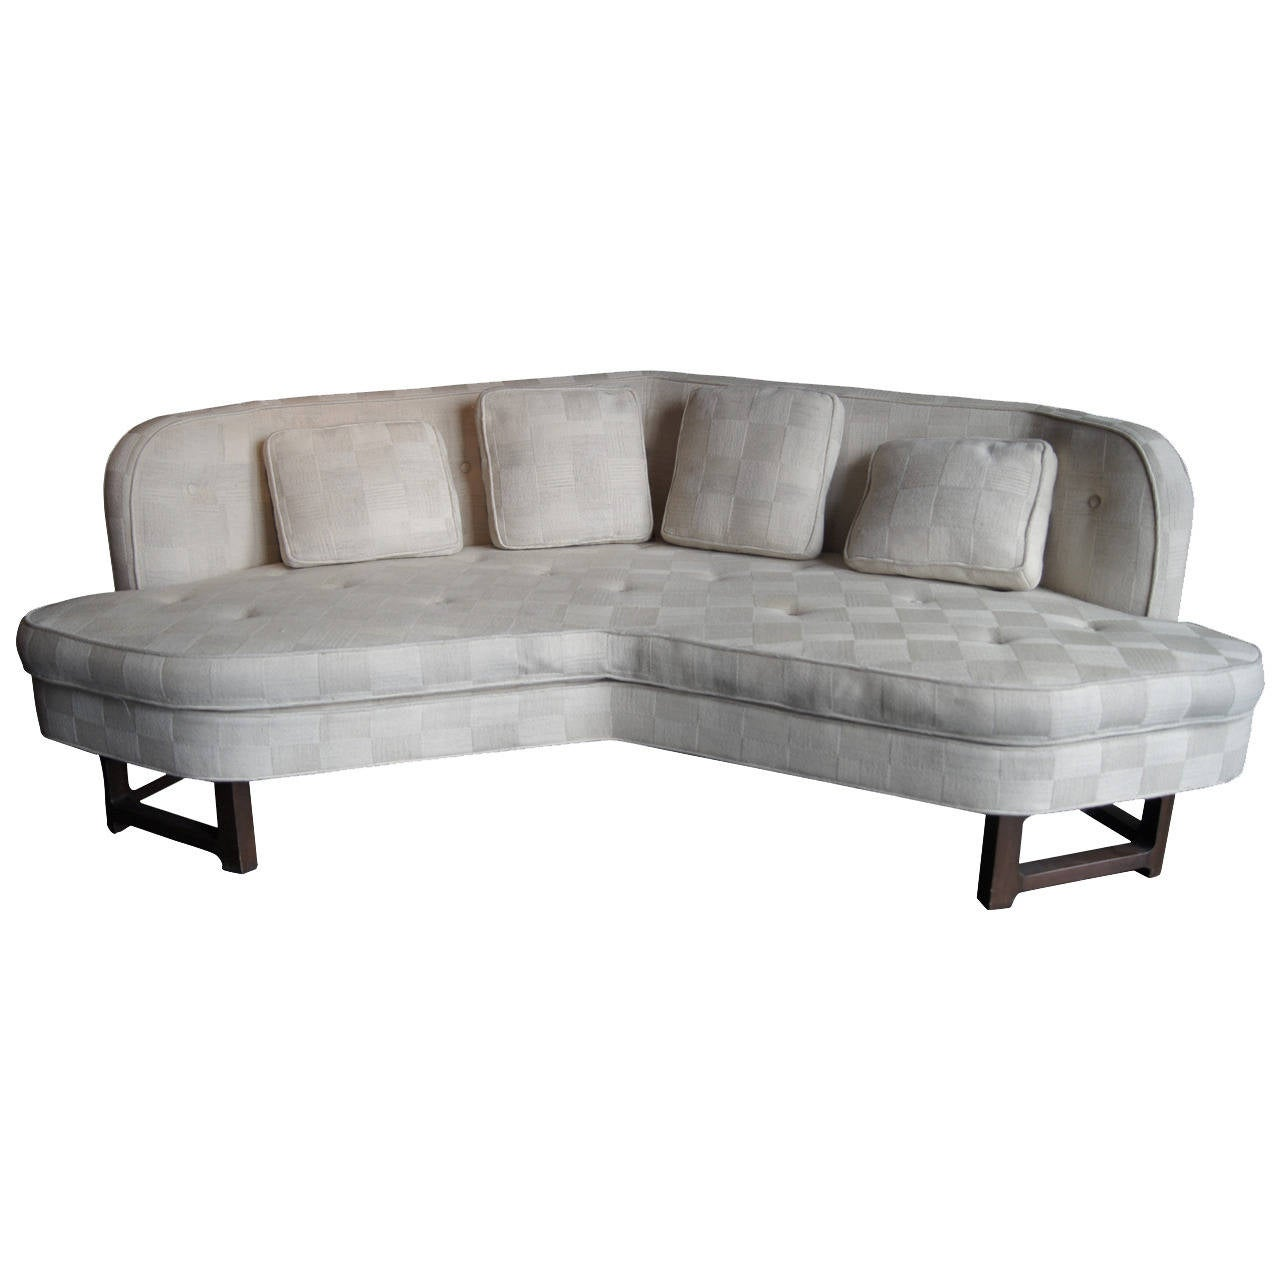 Angular Janus Collection Sofa, Model 6329, by Edward Wormley for Dunbar 1